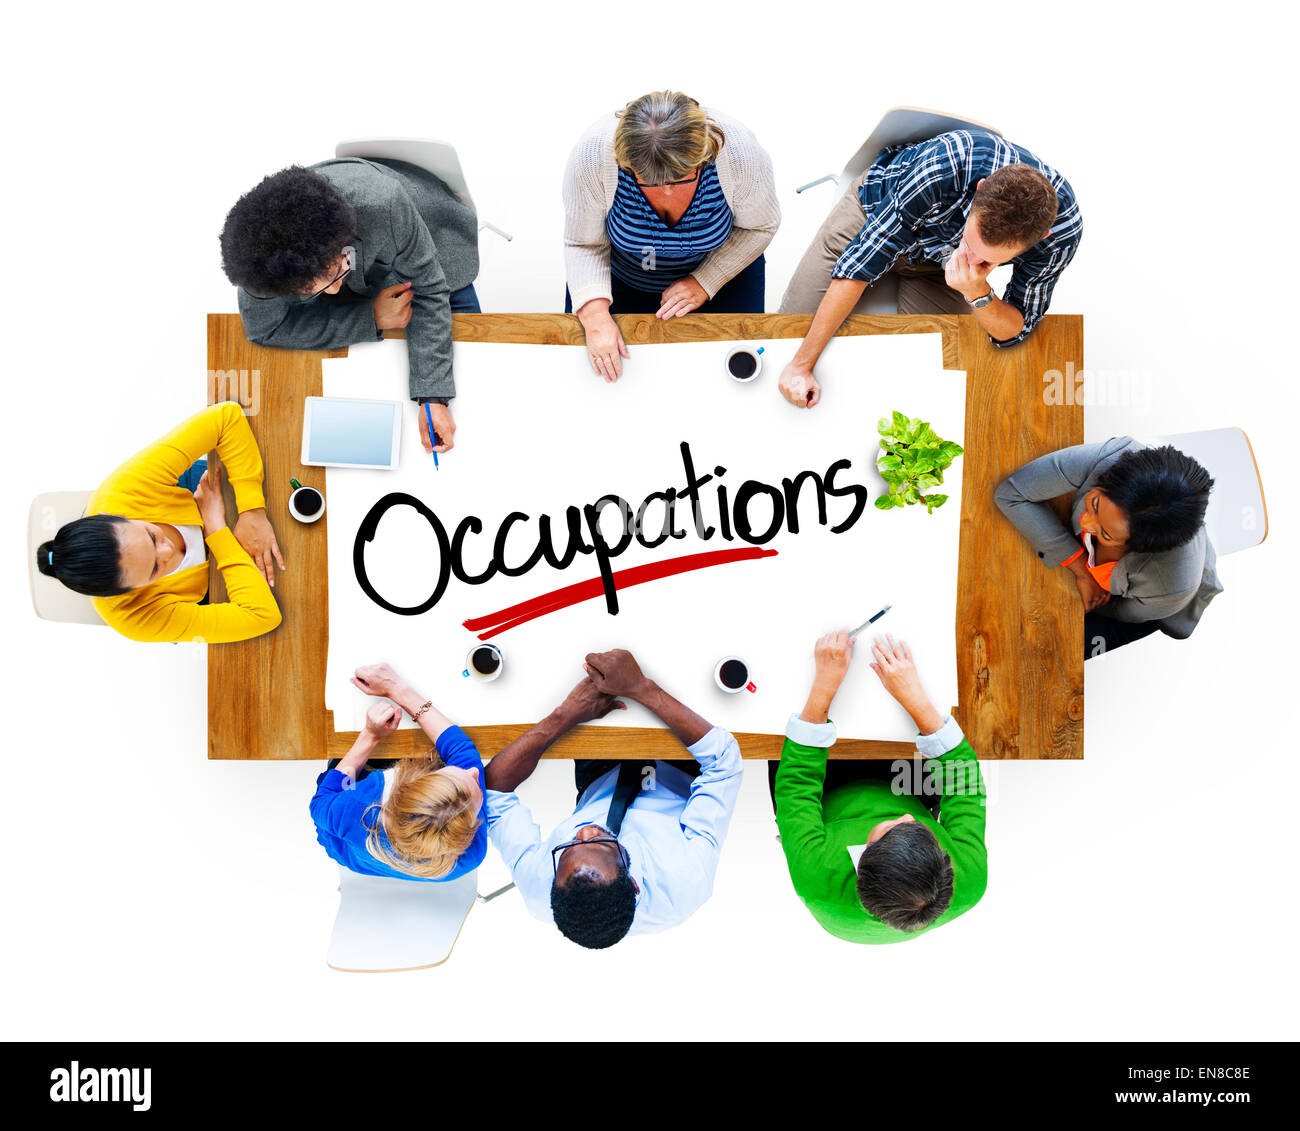 Group of People Brainstorming about Occupations Concept - Stock Image